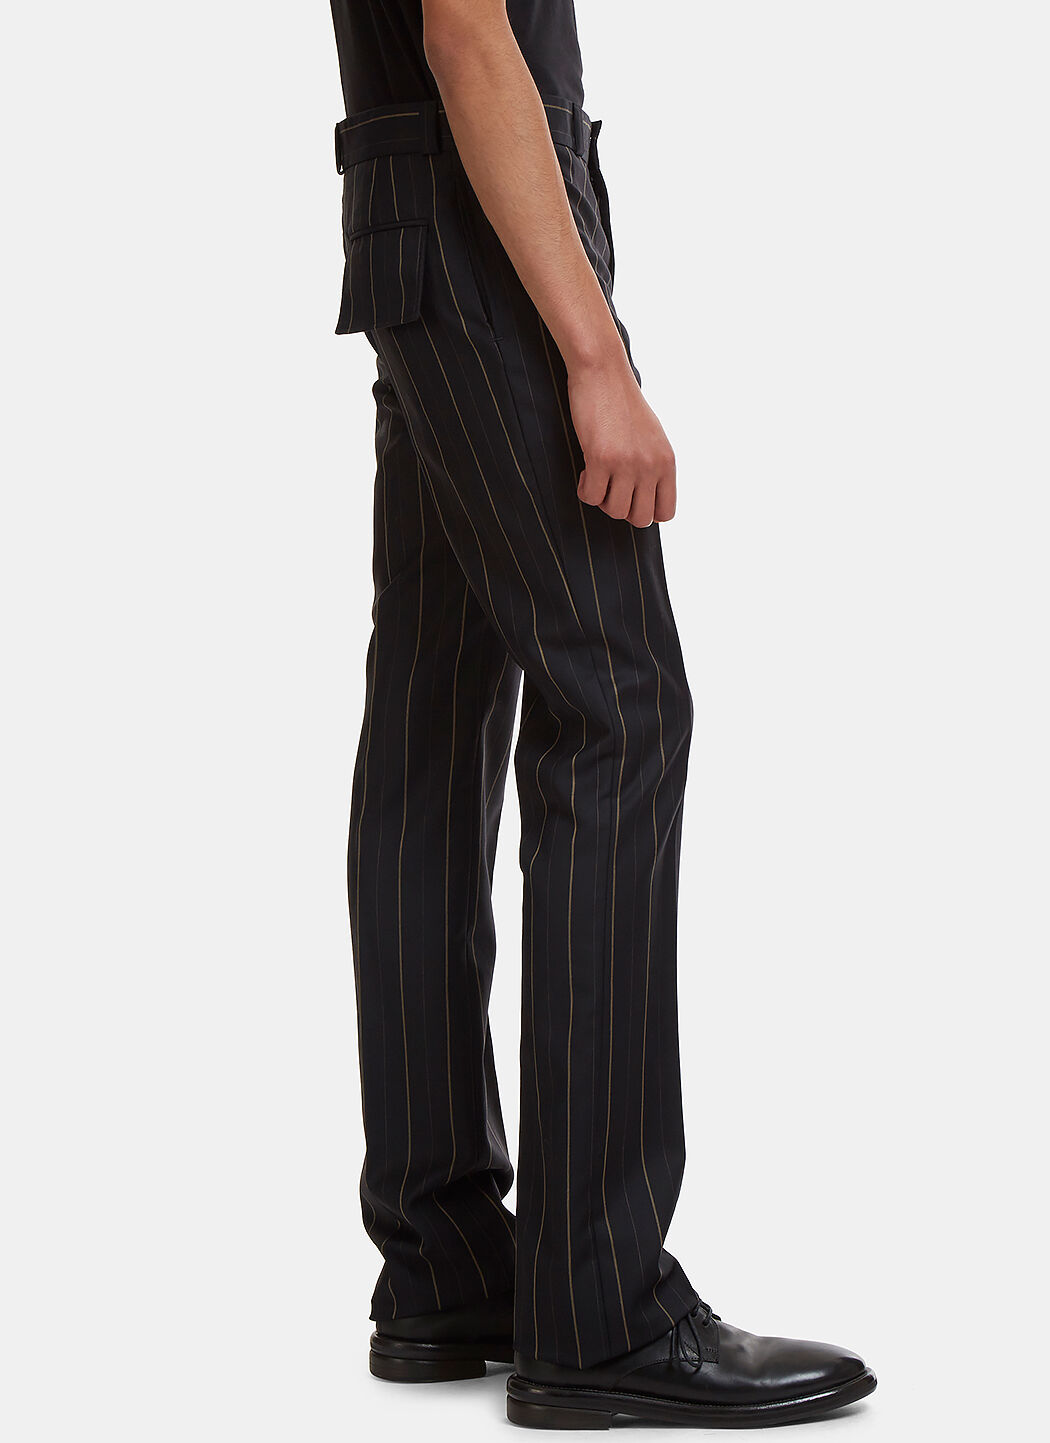 Beuys Tailored Striped Pants Wales Bonner vm0SDmhT